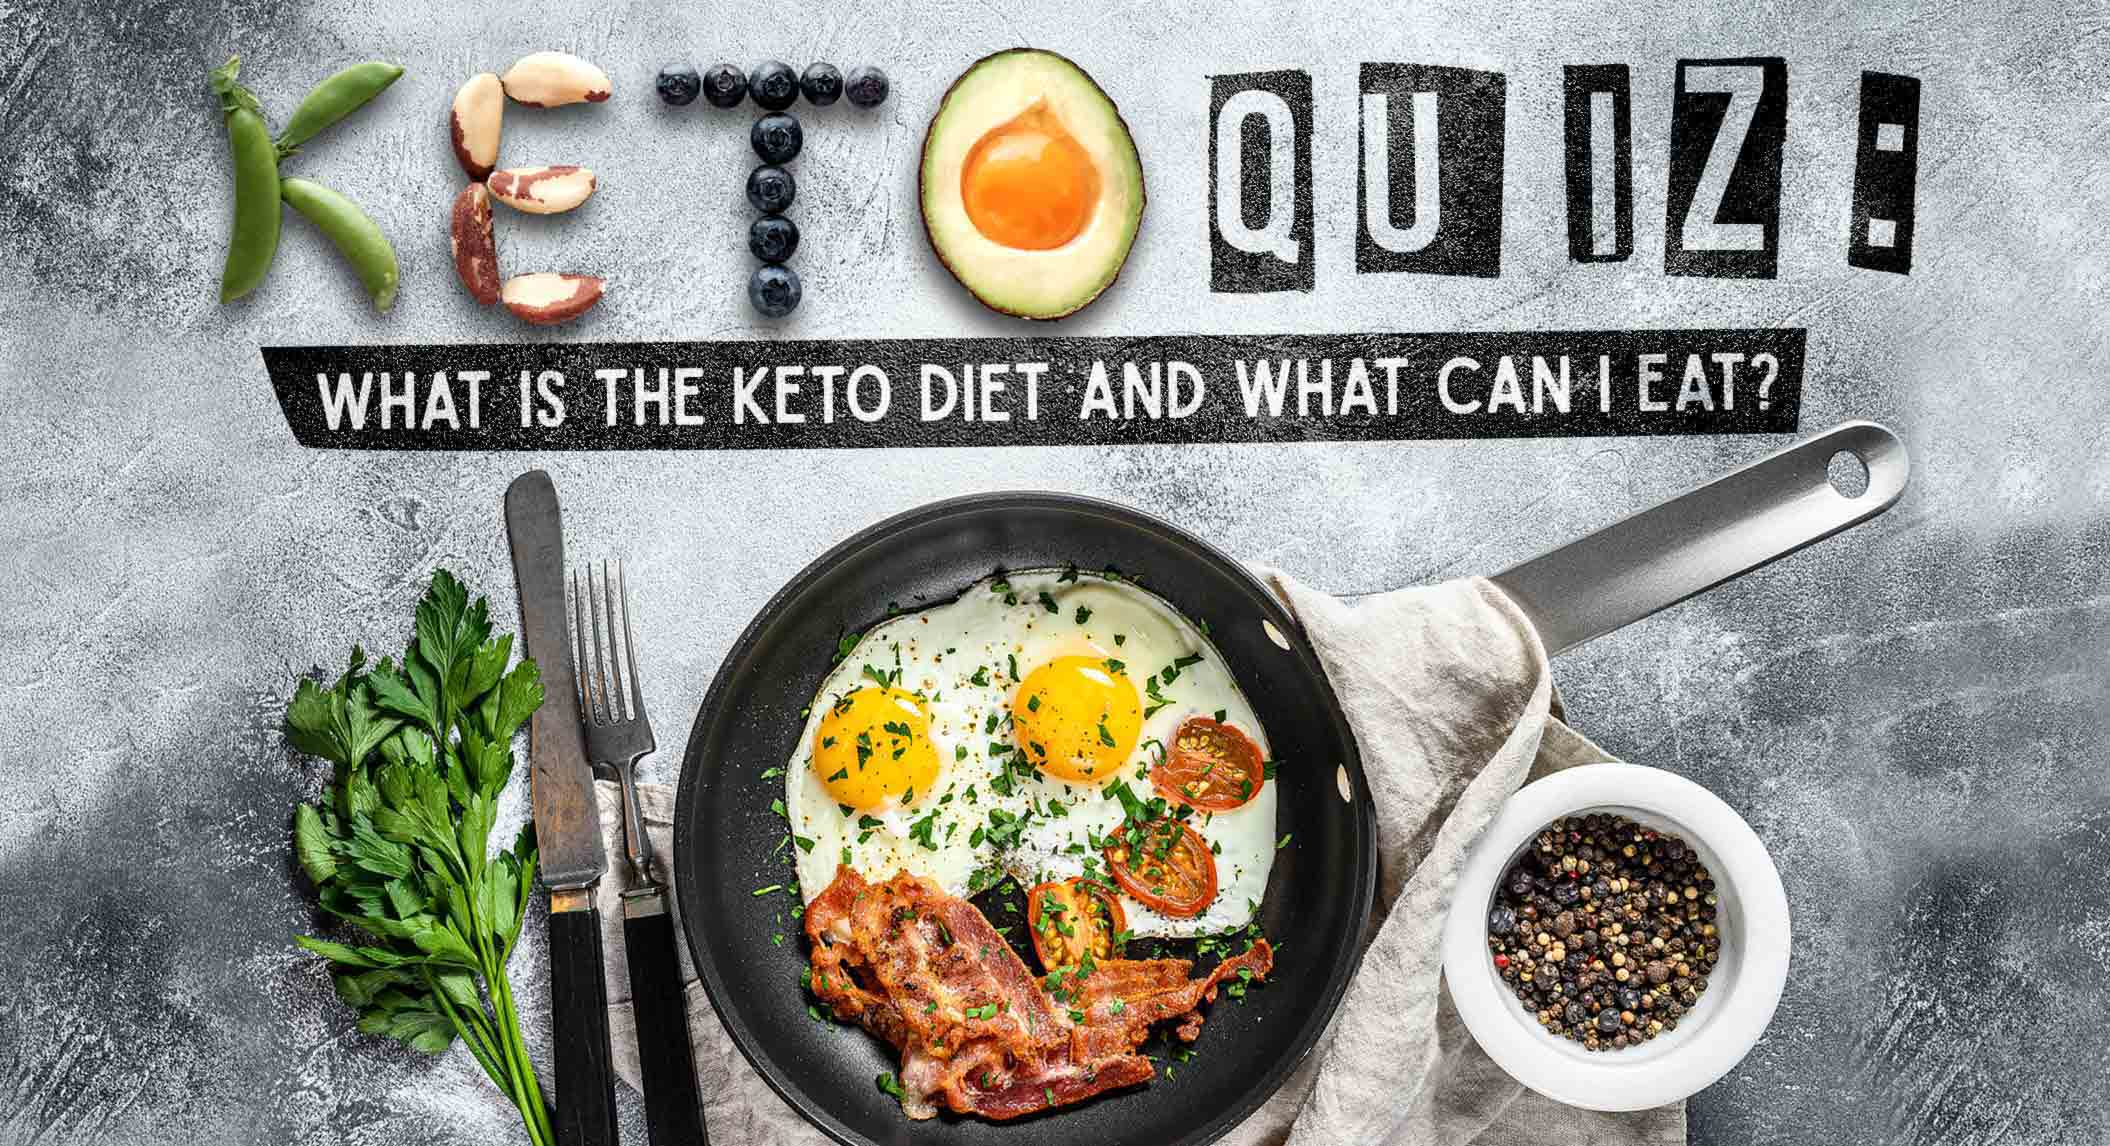 Keto Quiz: What Is the Keto Diet and What Can I Eat? | BrainFall